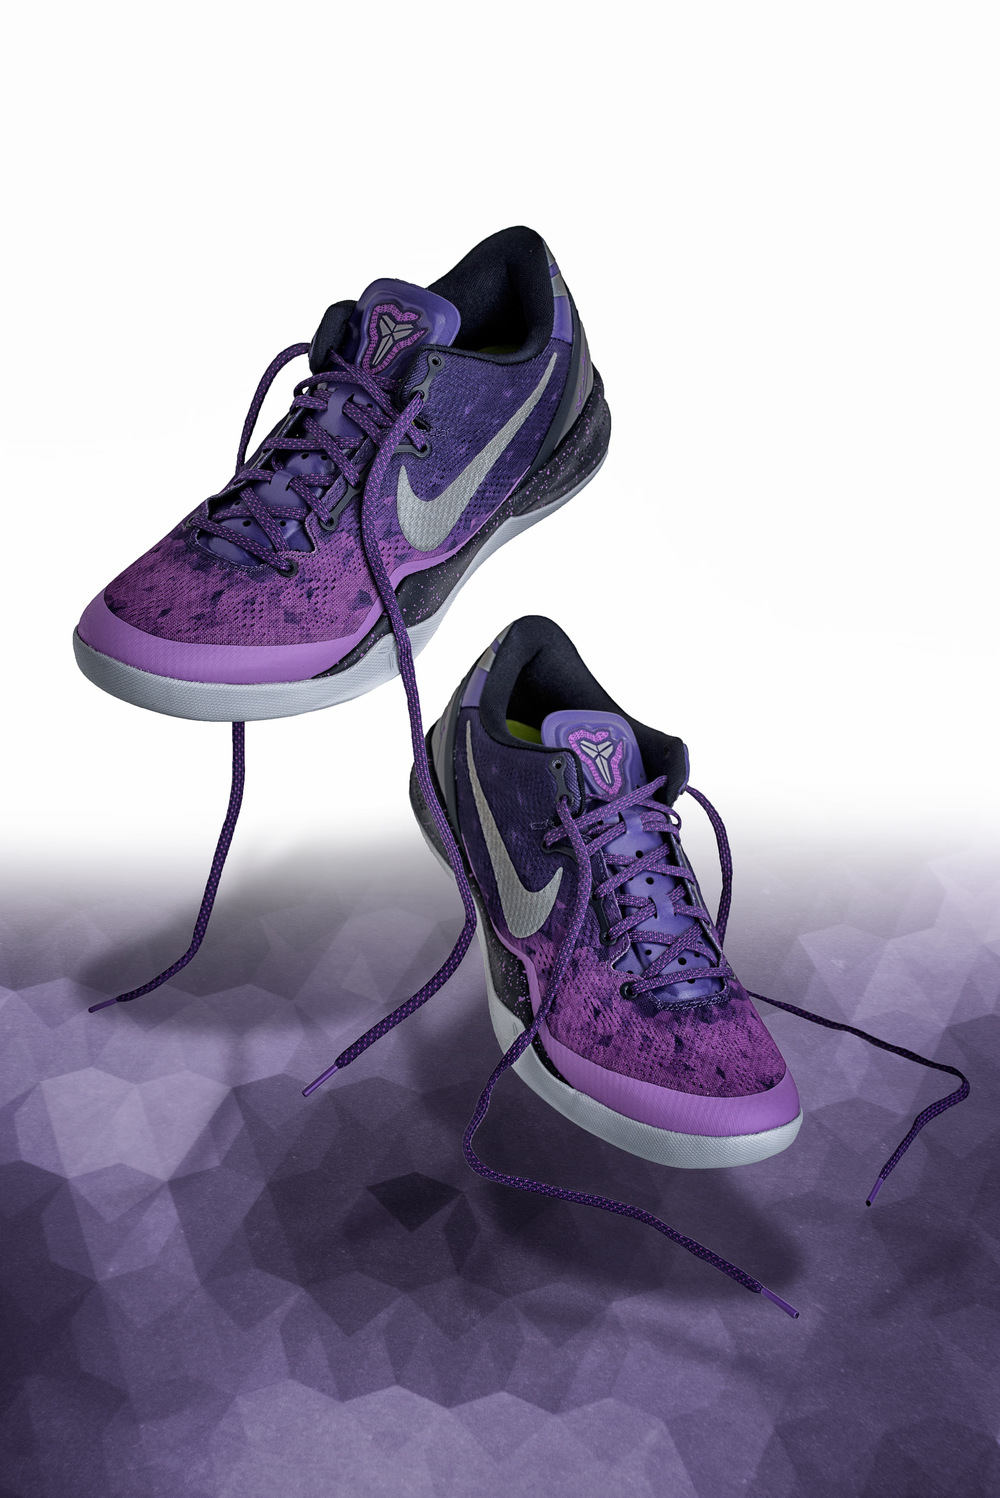 Kobe-8-purple web.jpg